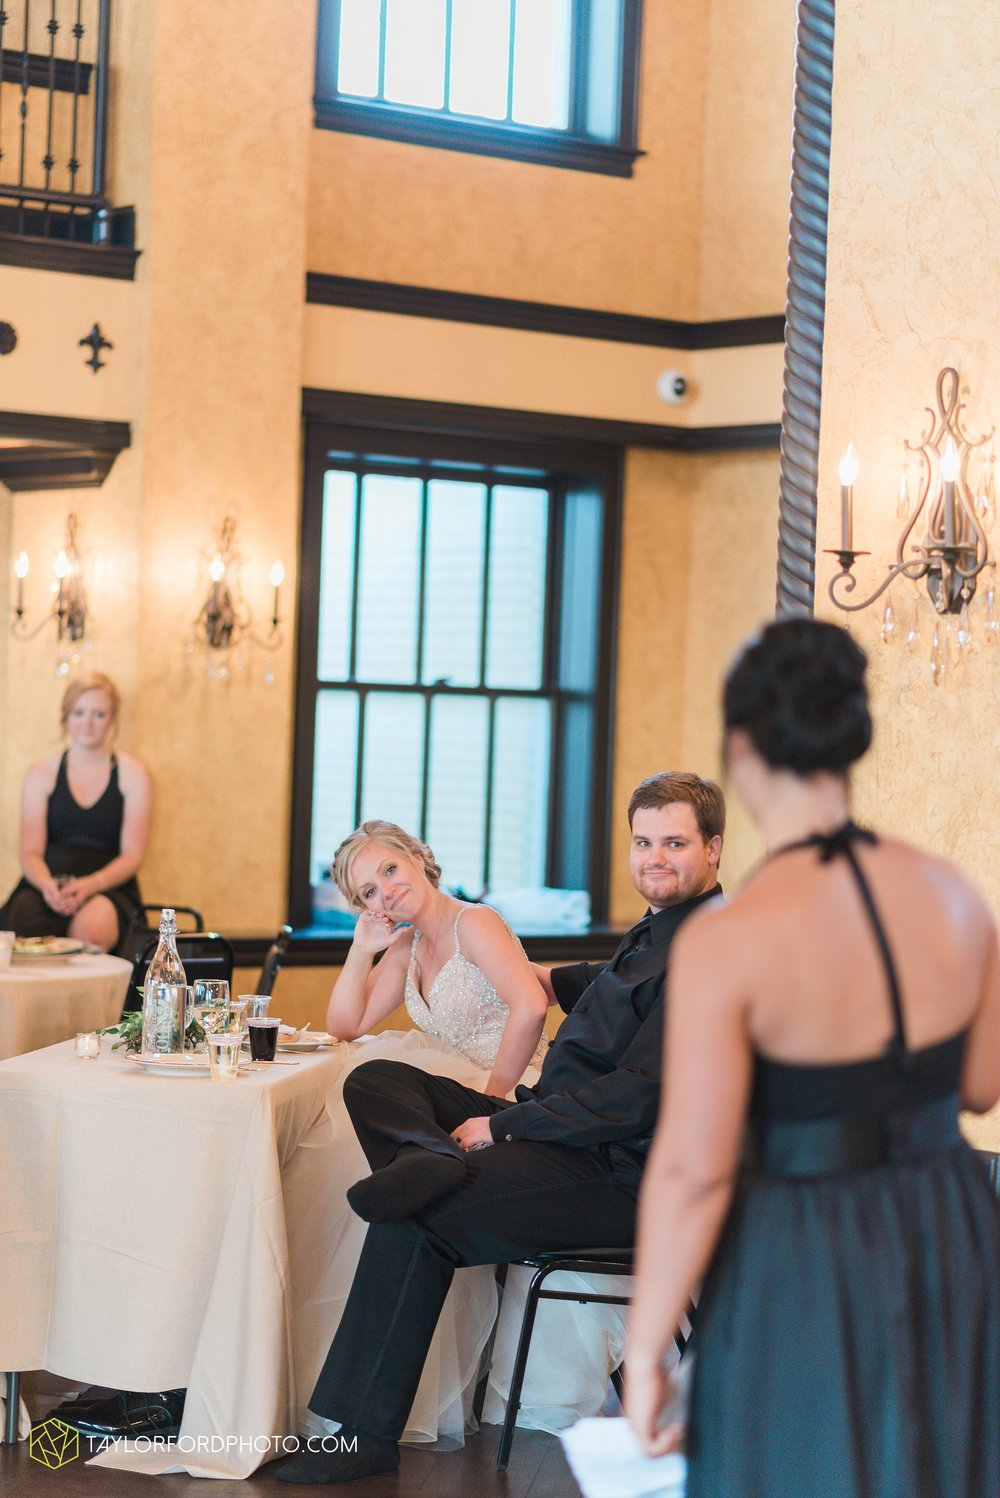 fort-wayne-indiana-taylor-ford-wedding-photography-the-embassy-theatre_0806.jpg